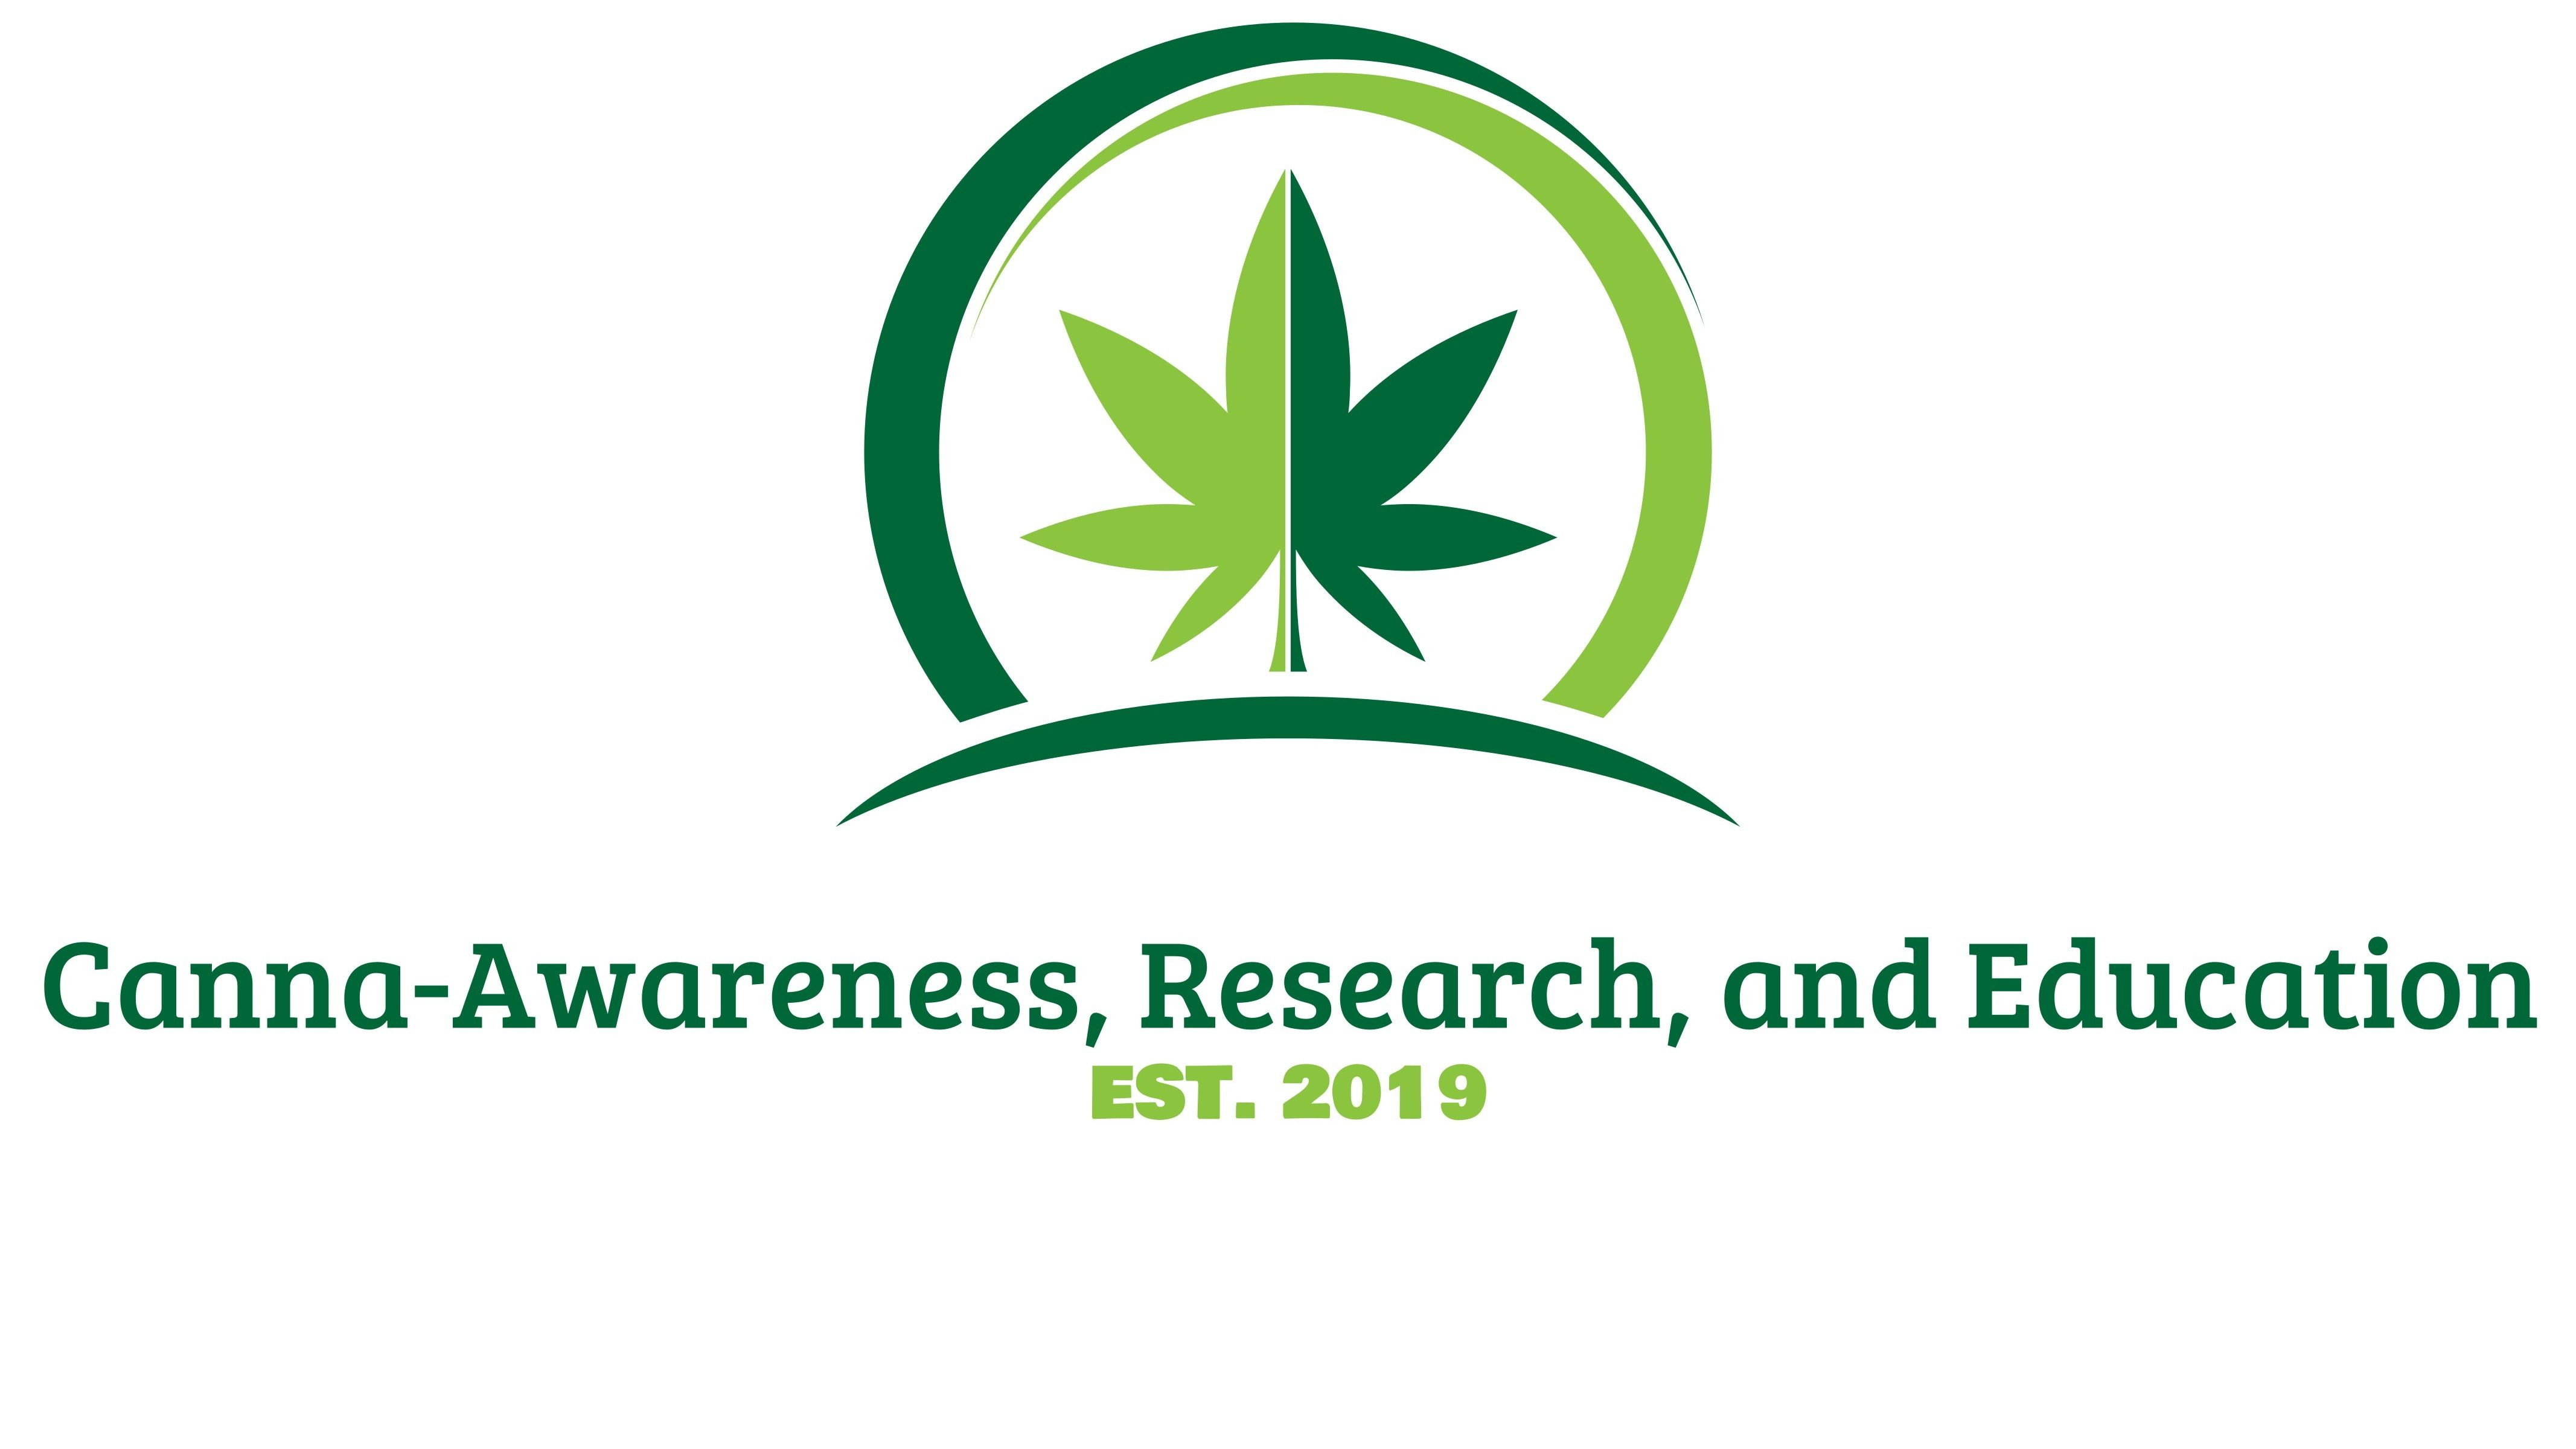 C.A.R.E.-Canna-Awareness, Research, and Education